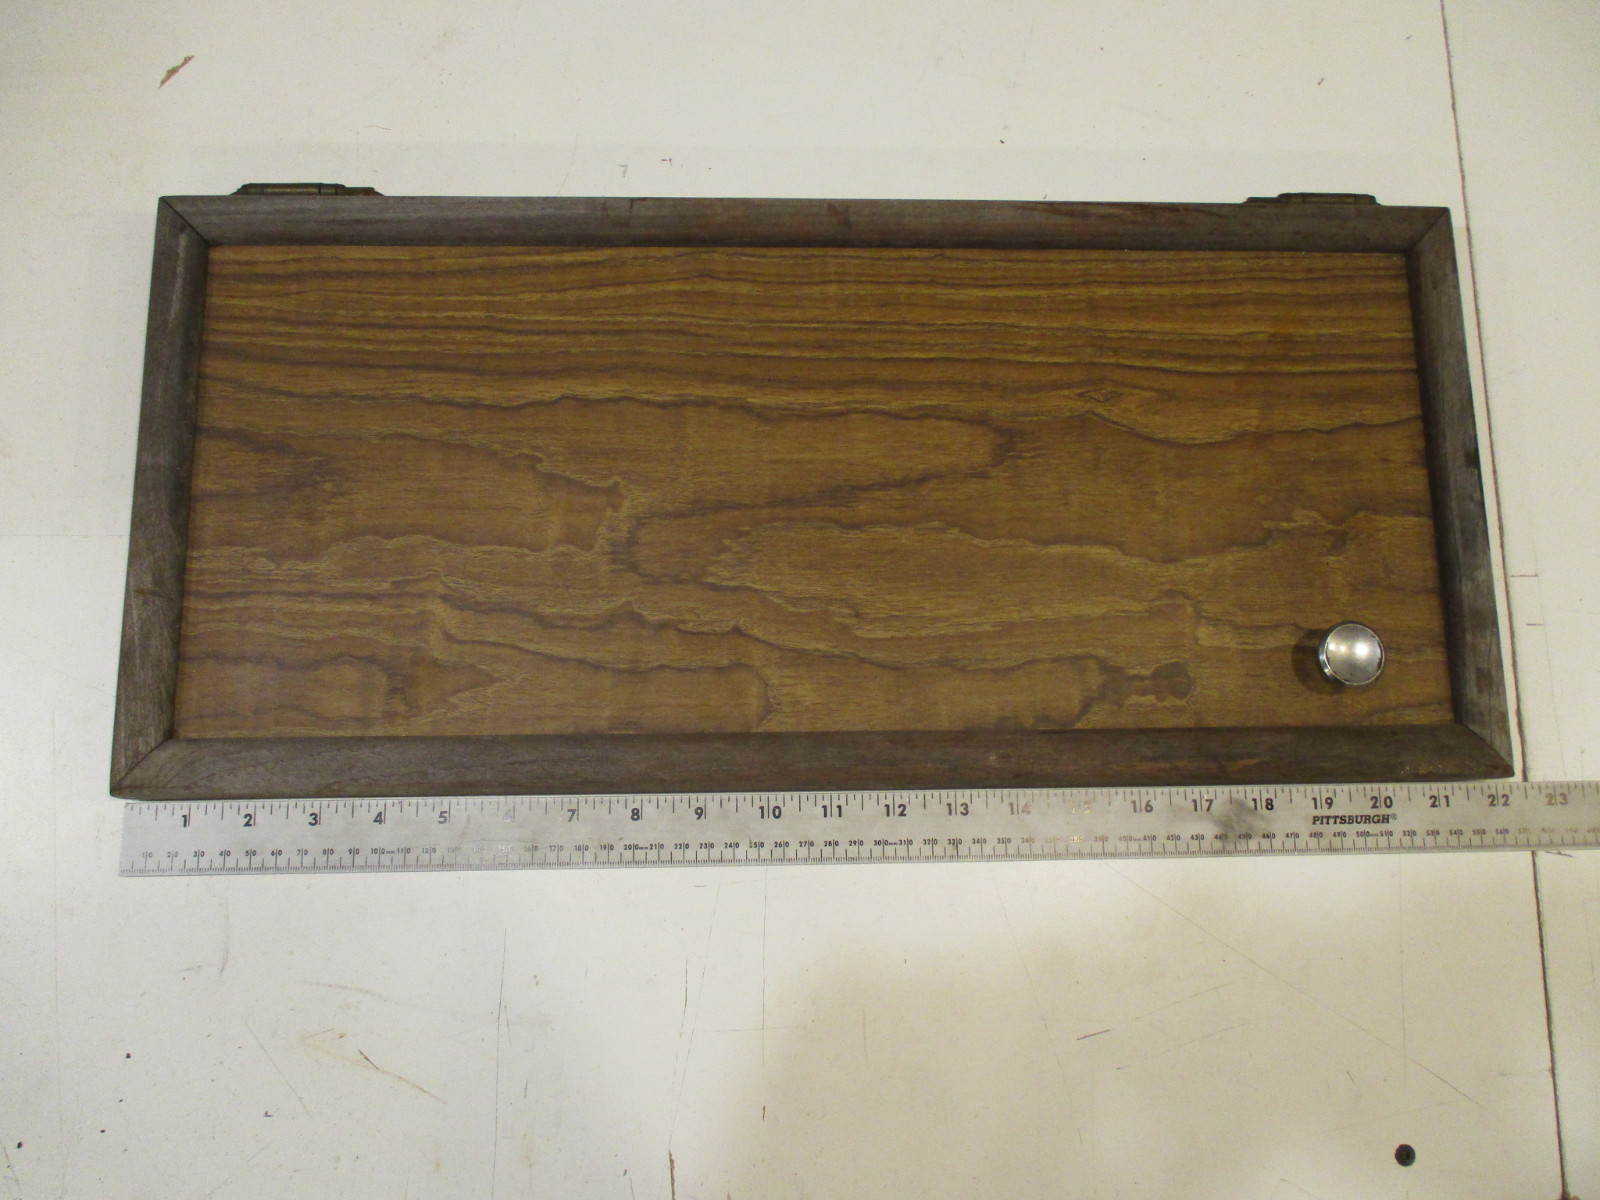 1984 renken marine boat wood cabinet cabin door 22 x 9 7 for Boat cabin entry doors